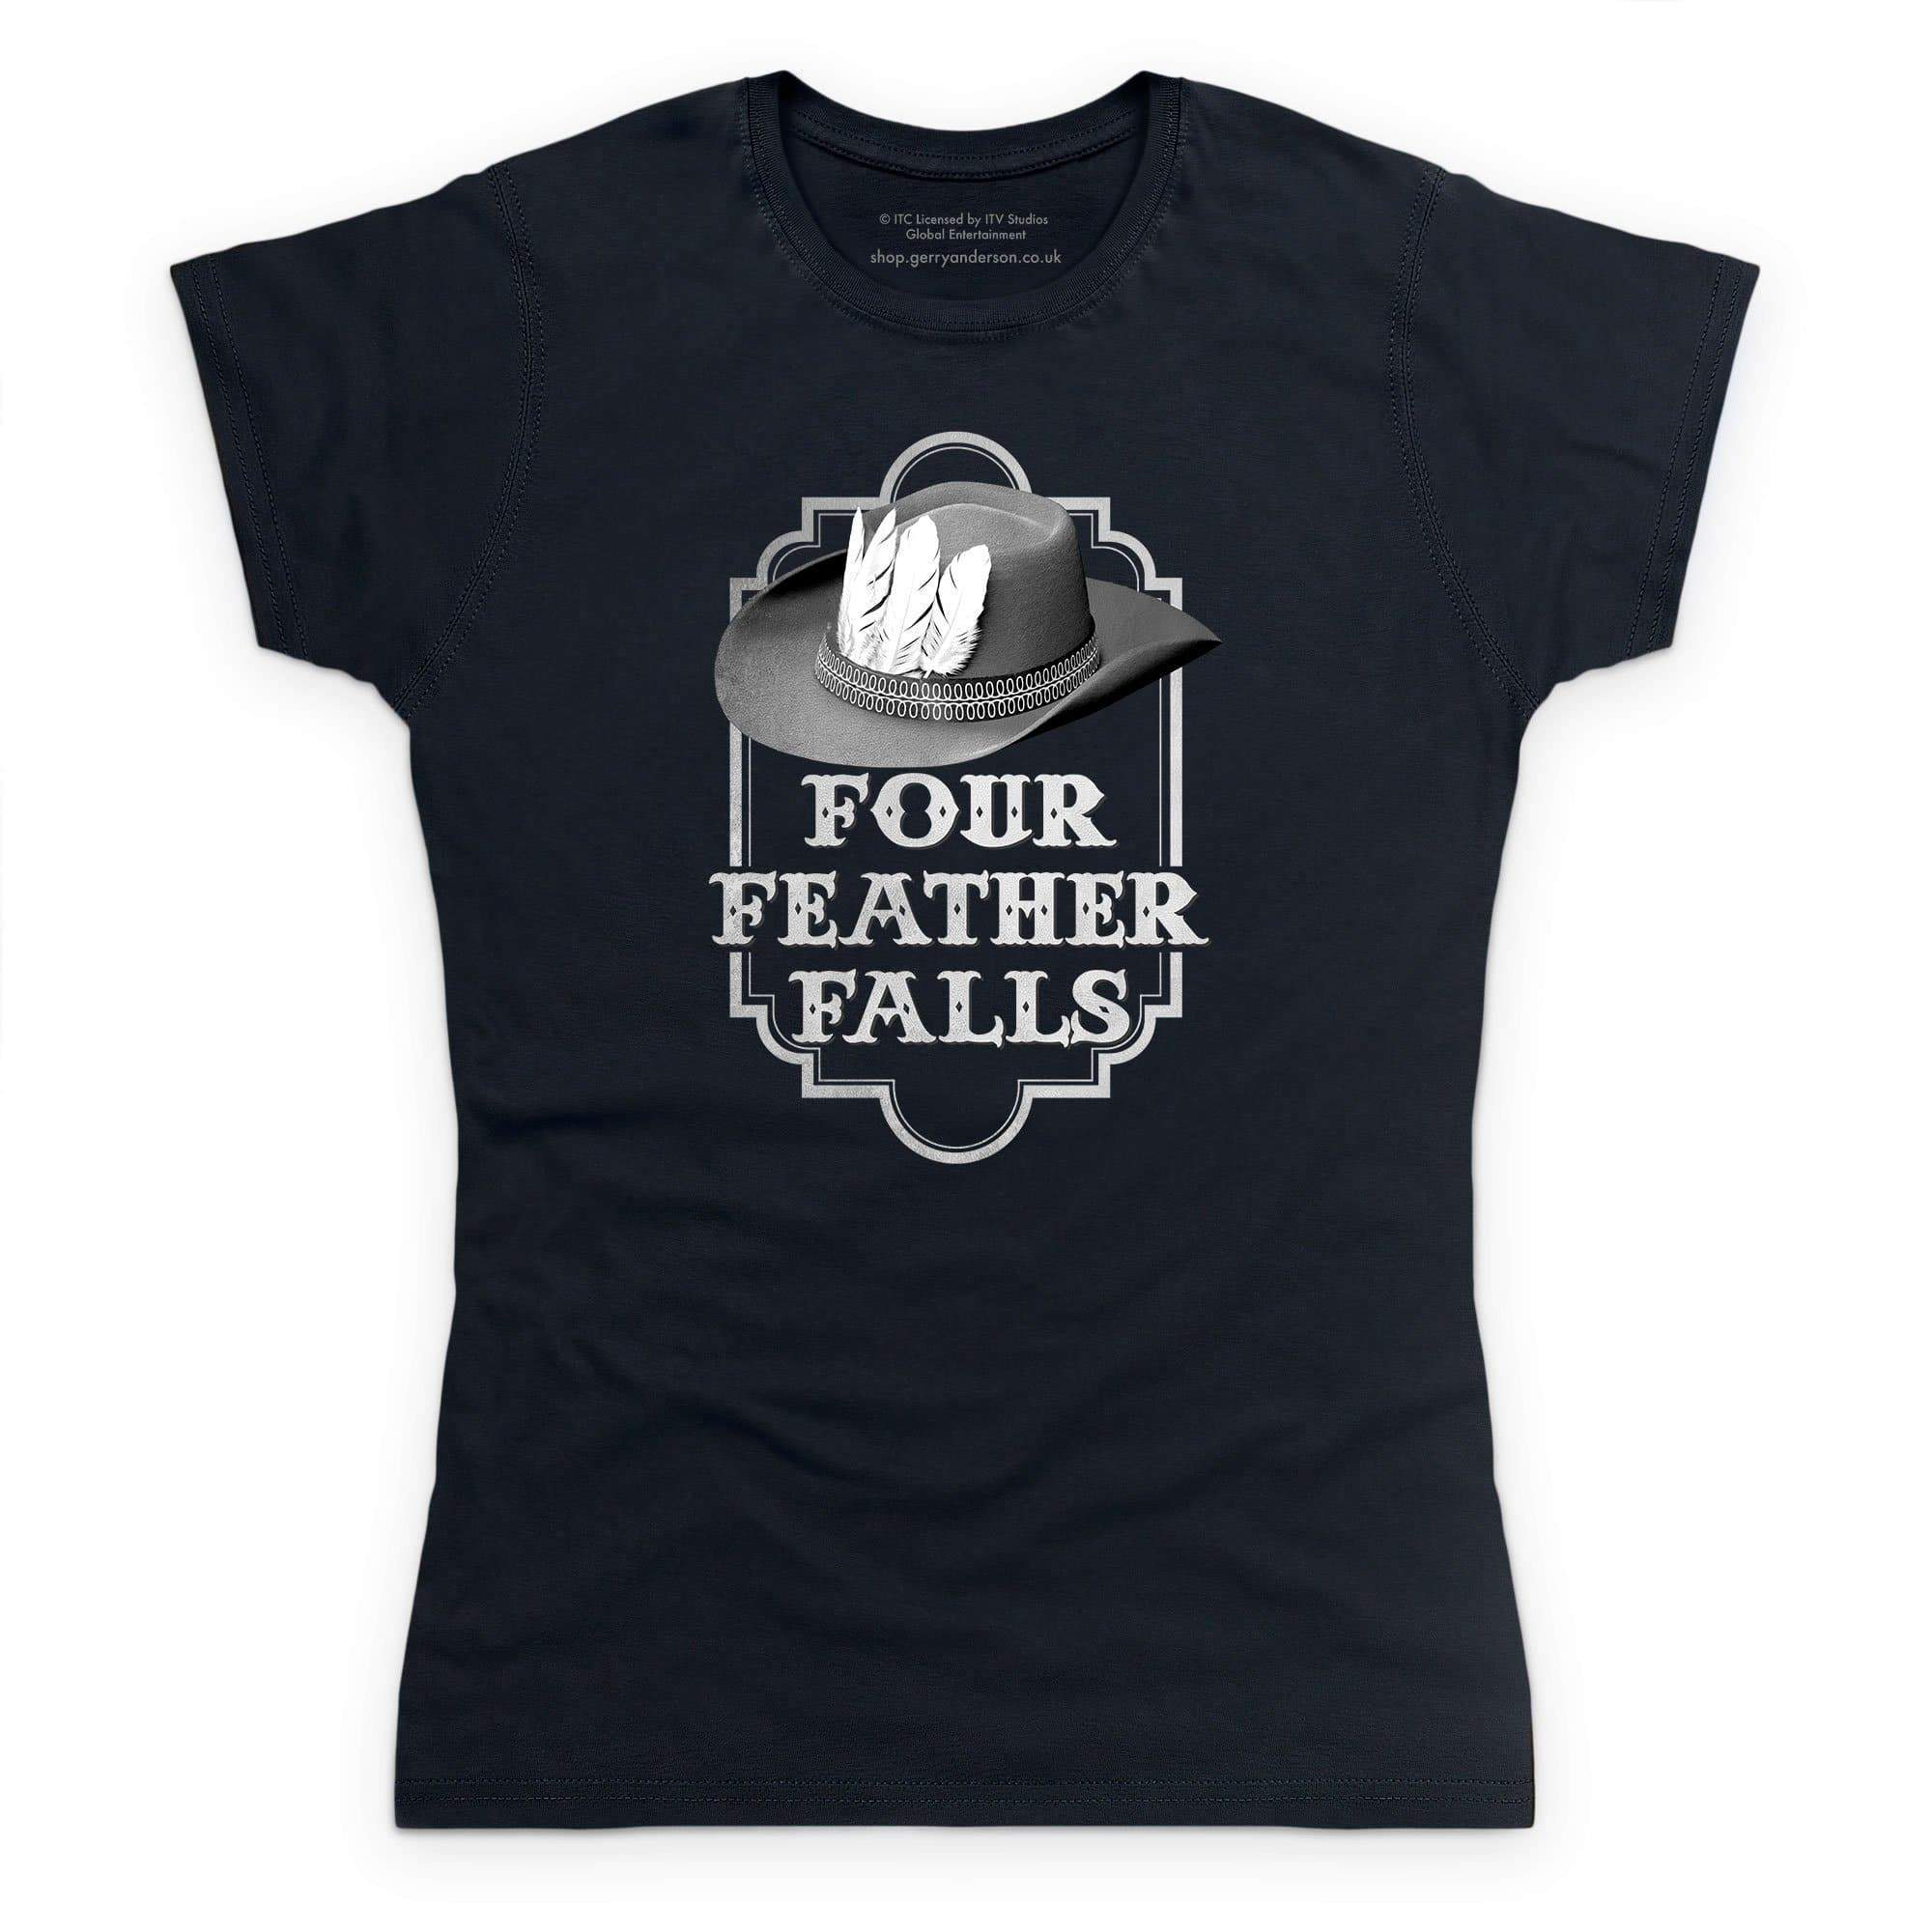 Four Feather Falls Women's T-shirt [Official & Exclusive] - The Gerry Anderson Store